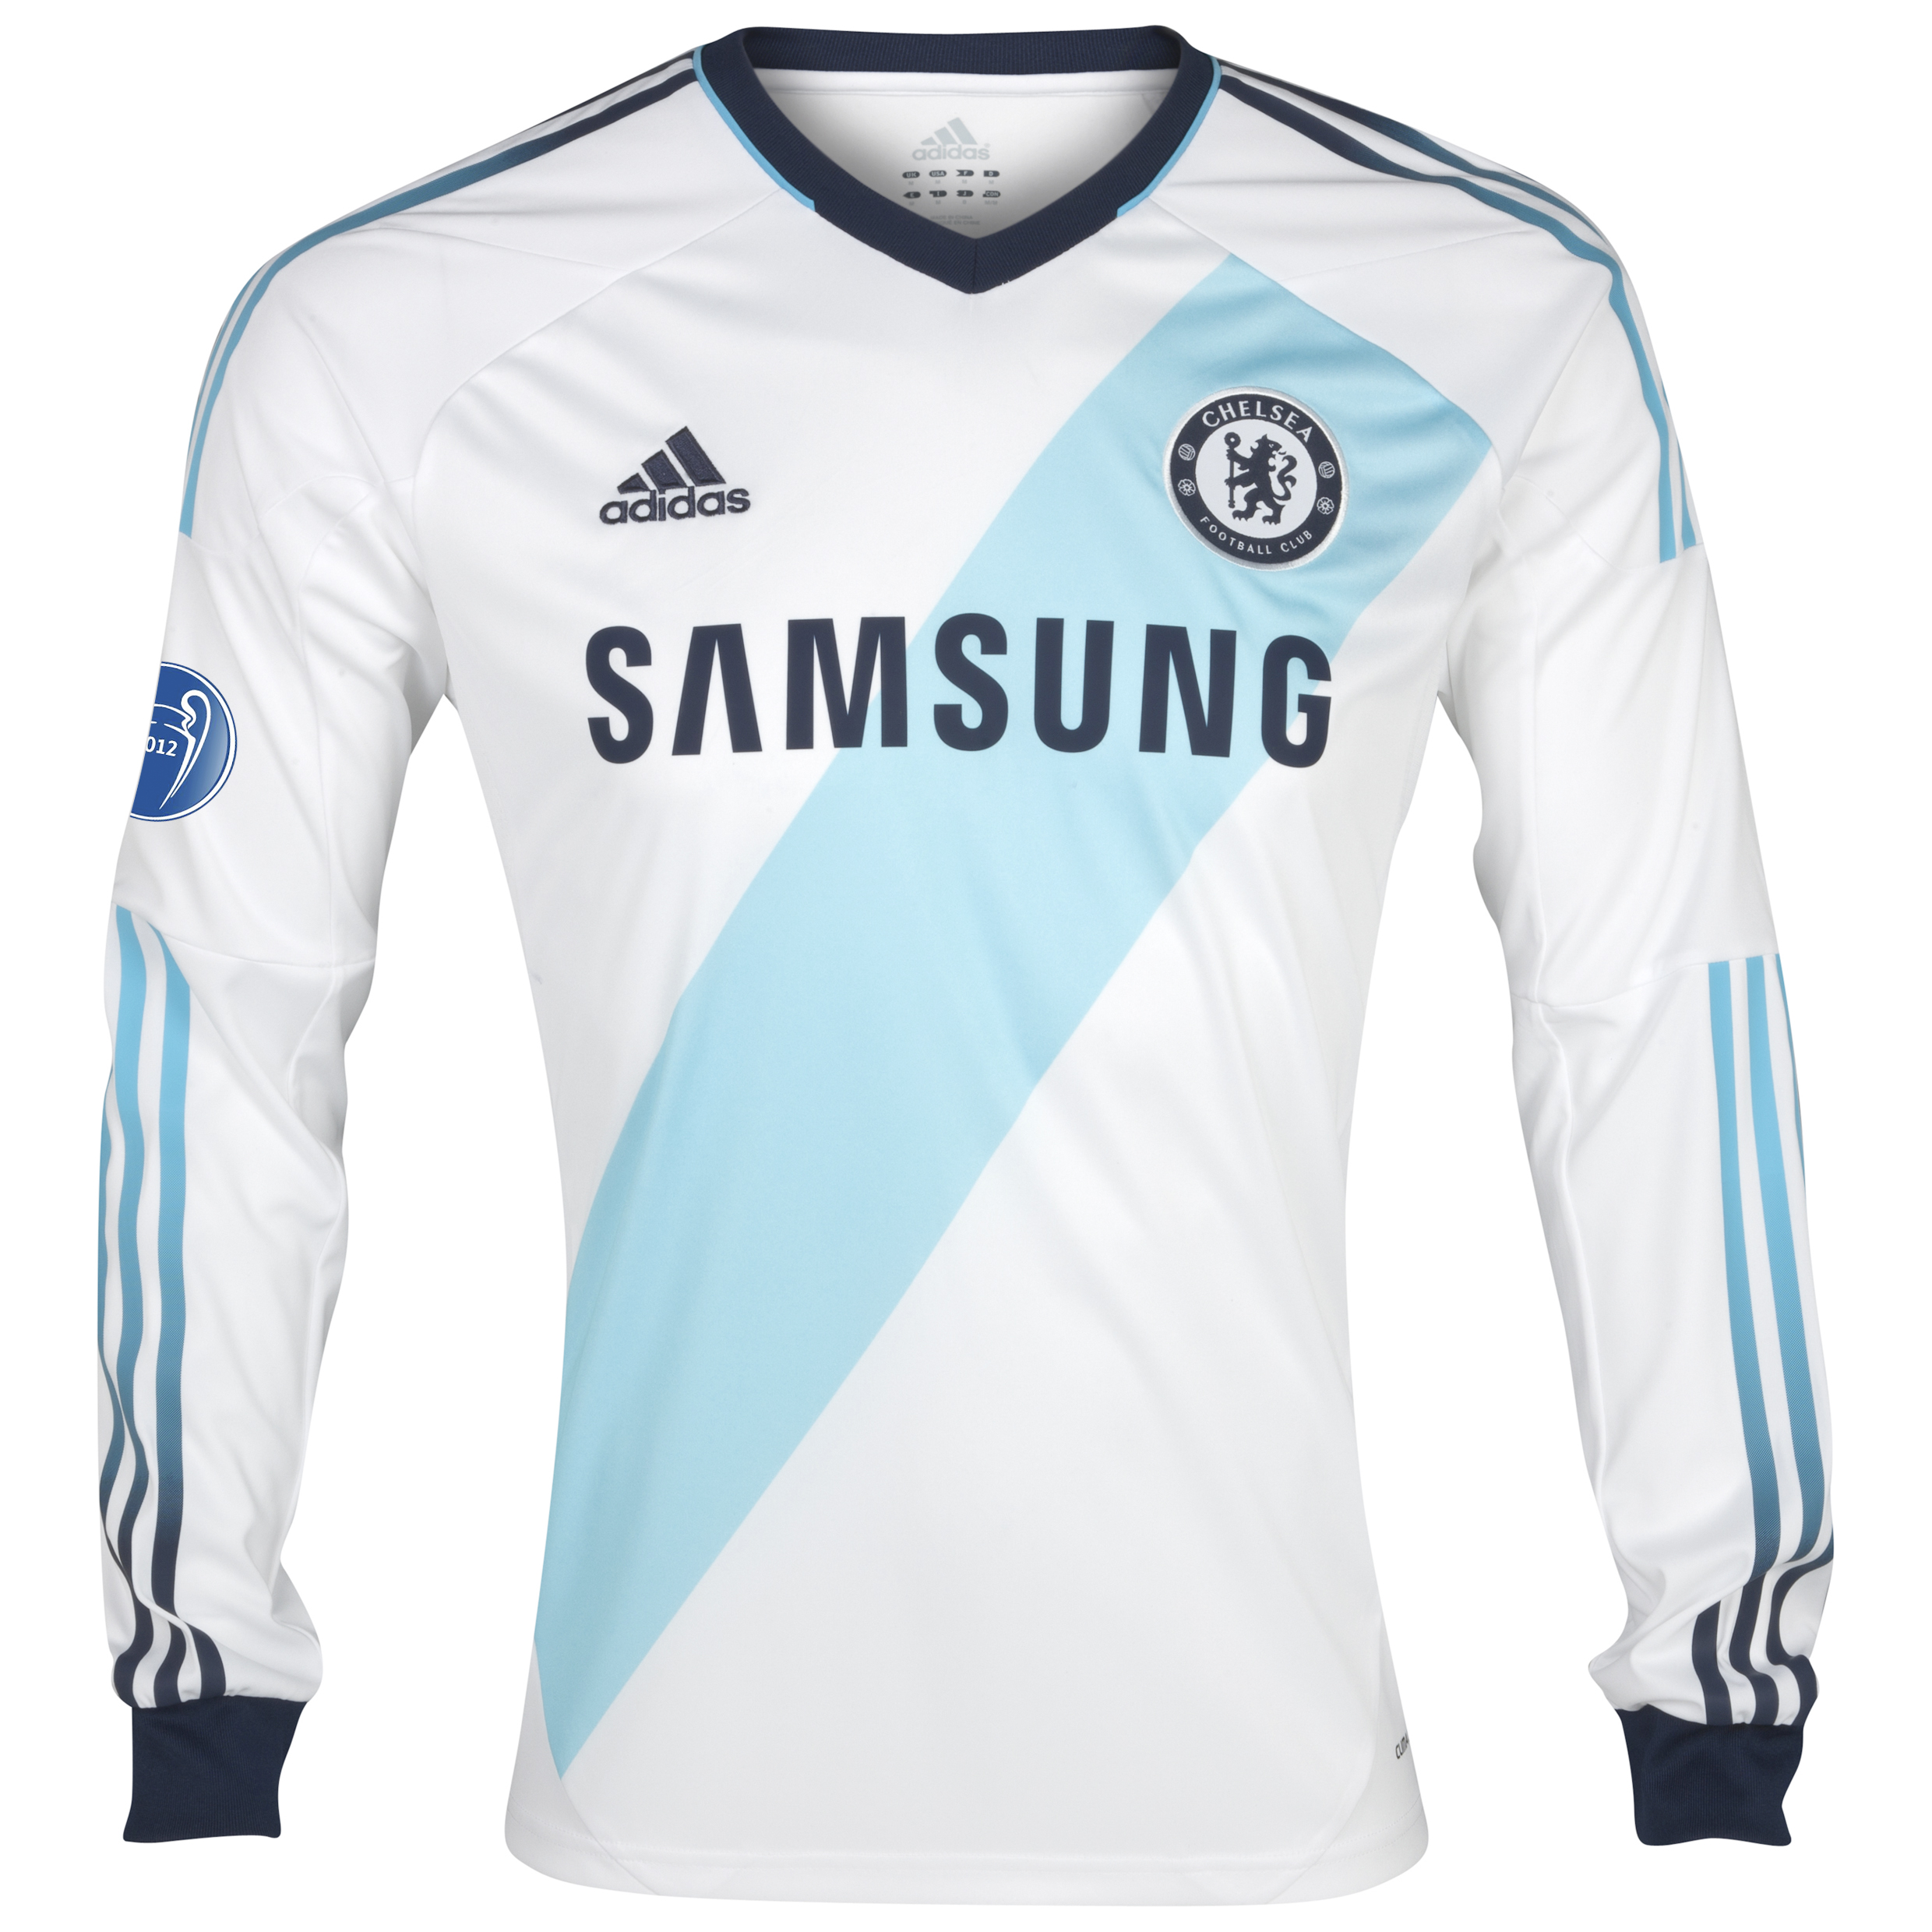 Chelsea UEFA Champions League Away Shirt 2012/13 - Long Sleeved  - Youths with Winners Badge